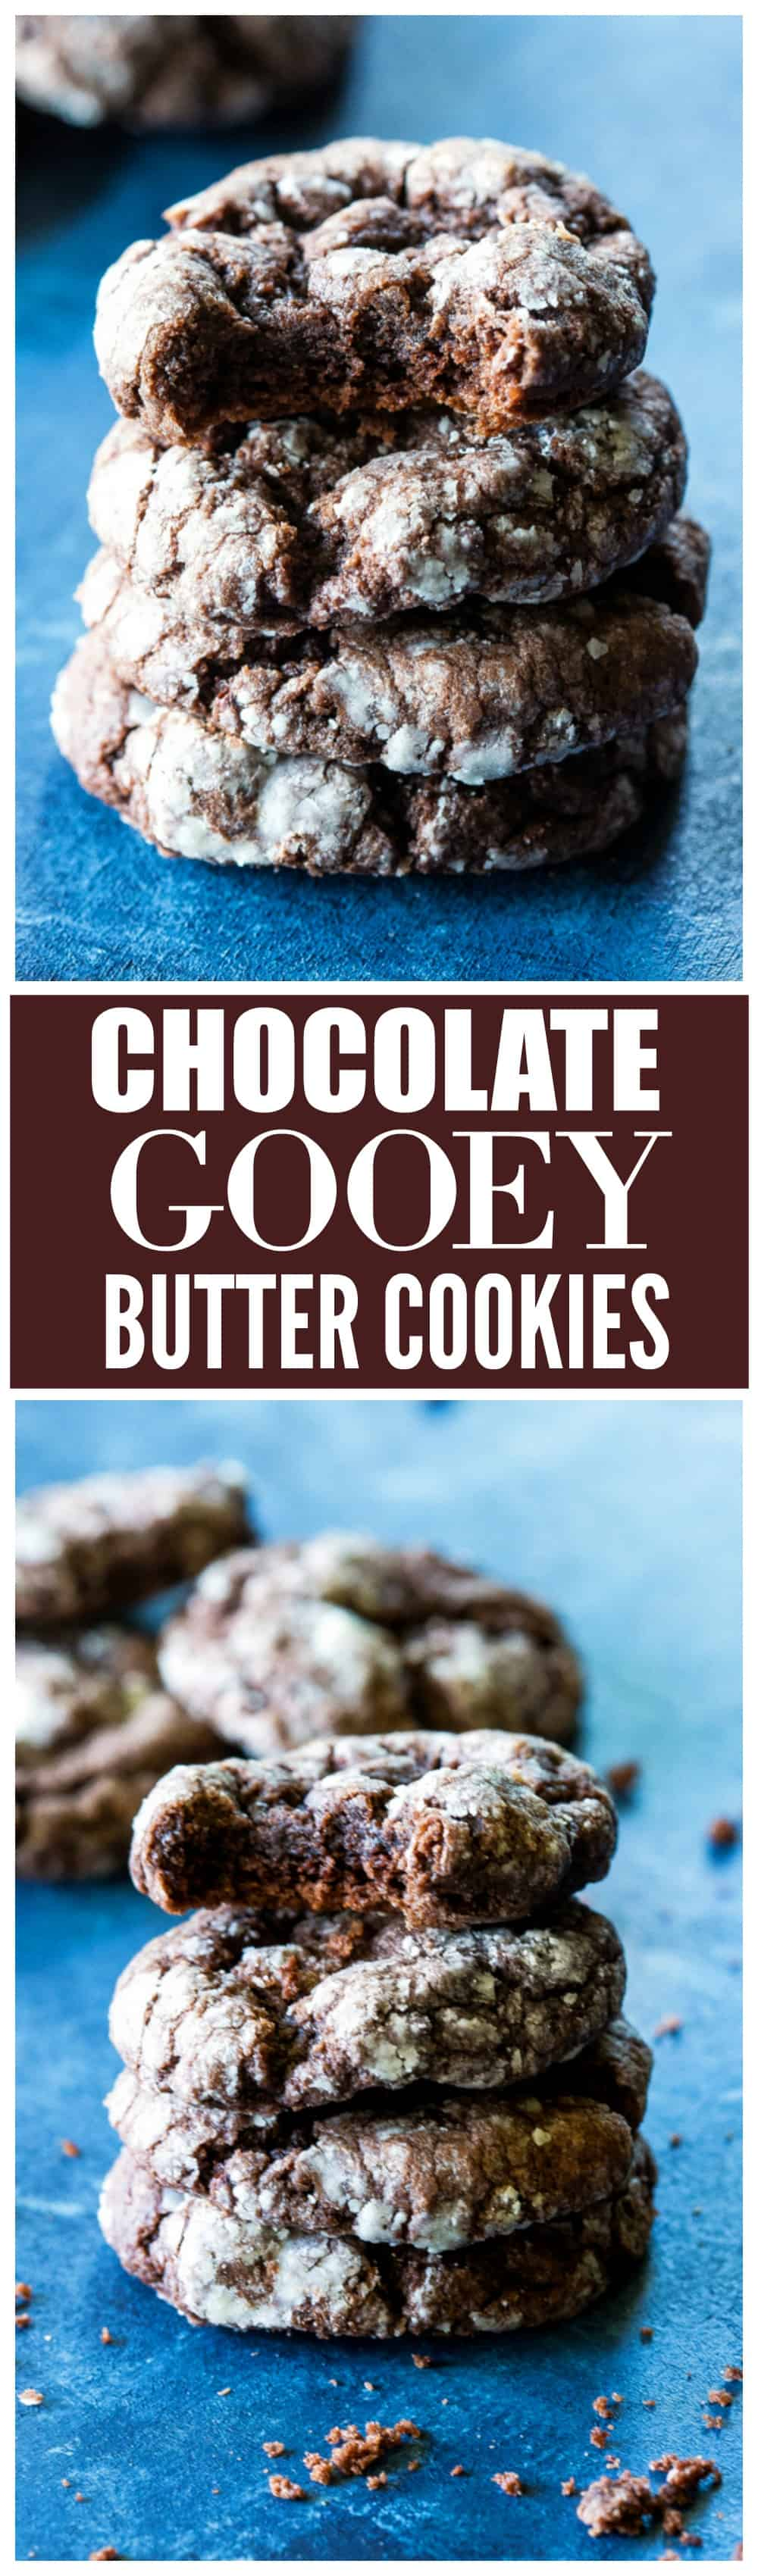 Chocolate Ooey Gooey Butter Cookies - so easy and so good.